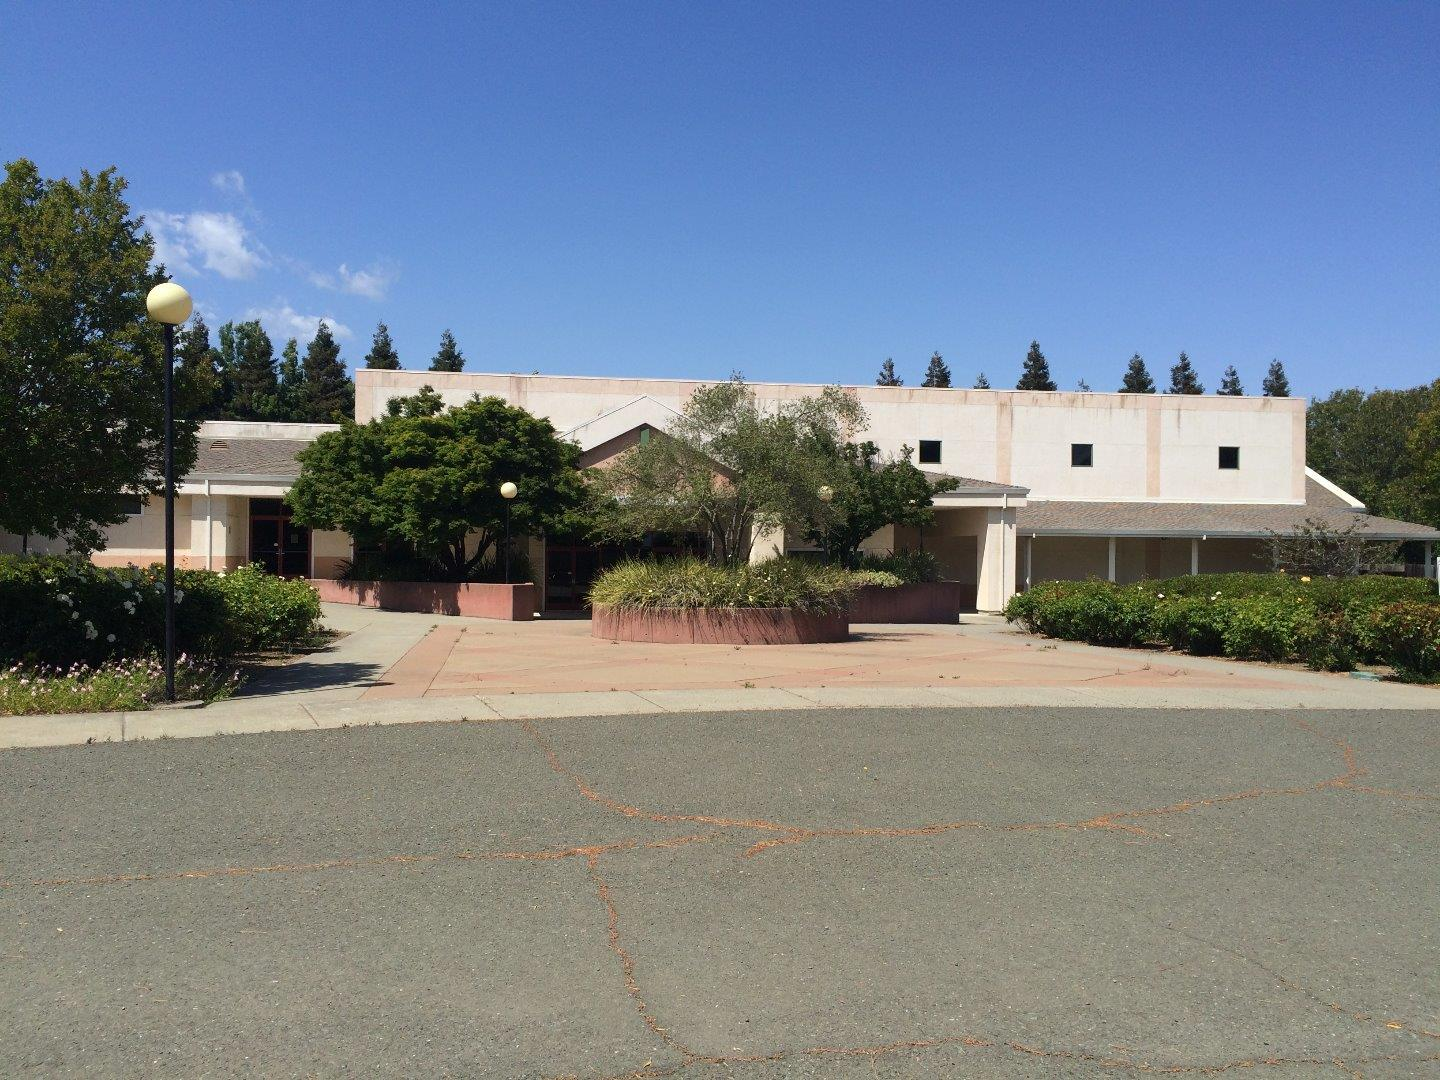 Commercial for Sale at 2100 Pennsylvania 2100 Pennsylvania Fairfield, California 94533 United States